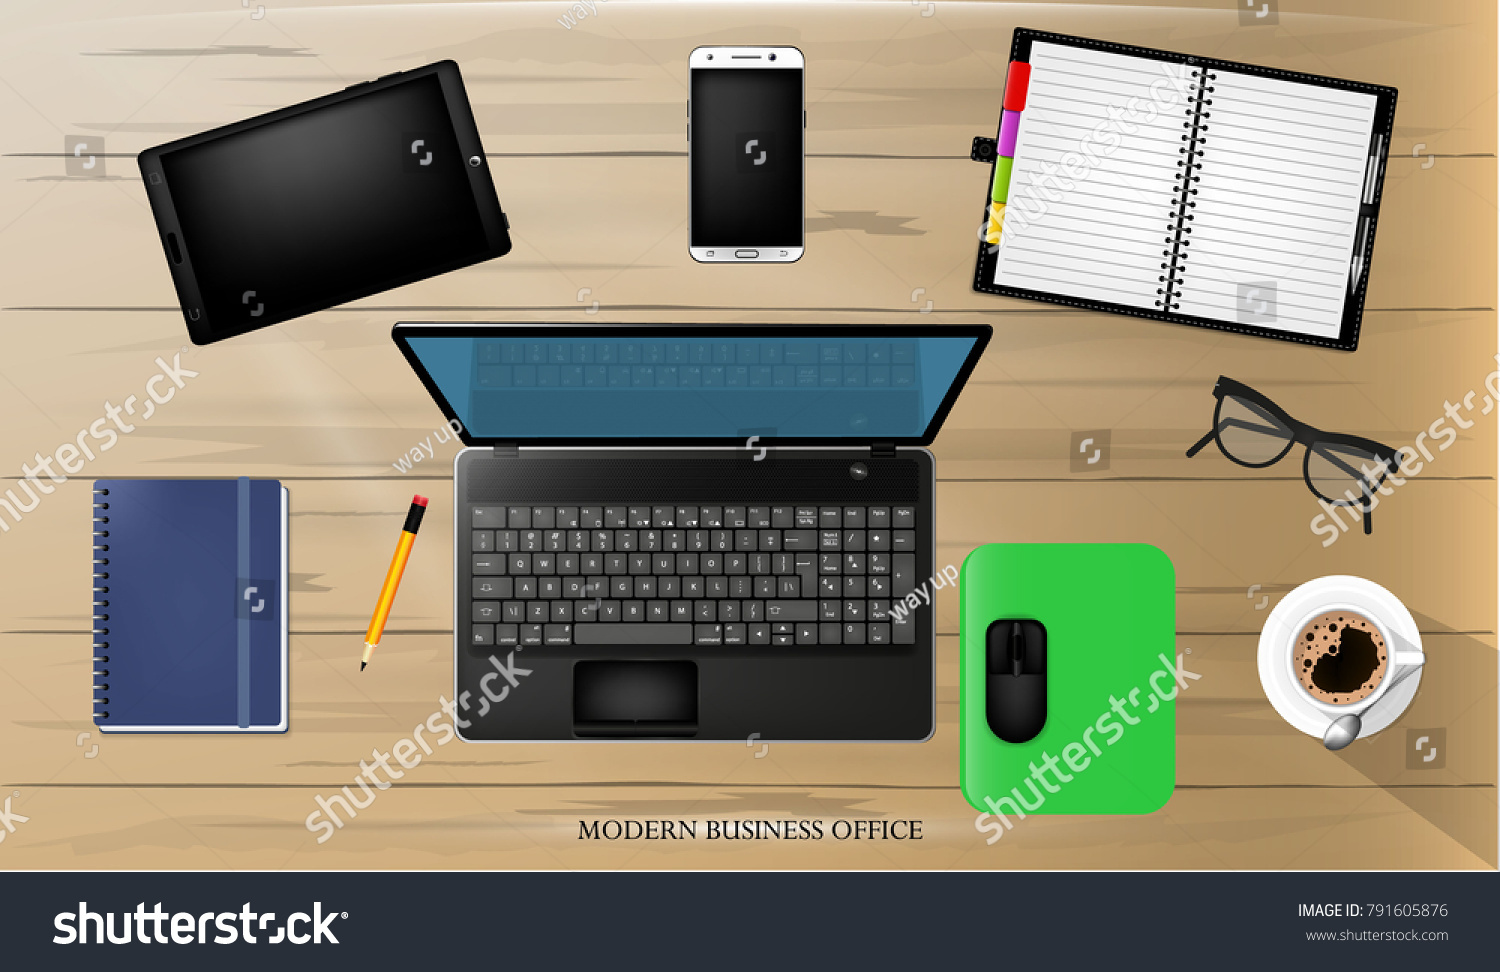 Modern Business Office And Workspace Background, Vector Illustration. Top  View Of Office Desk With